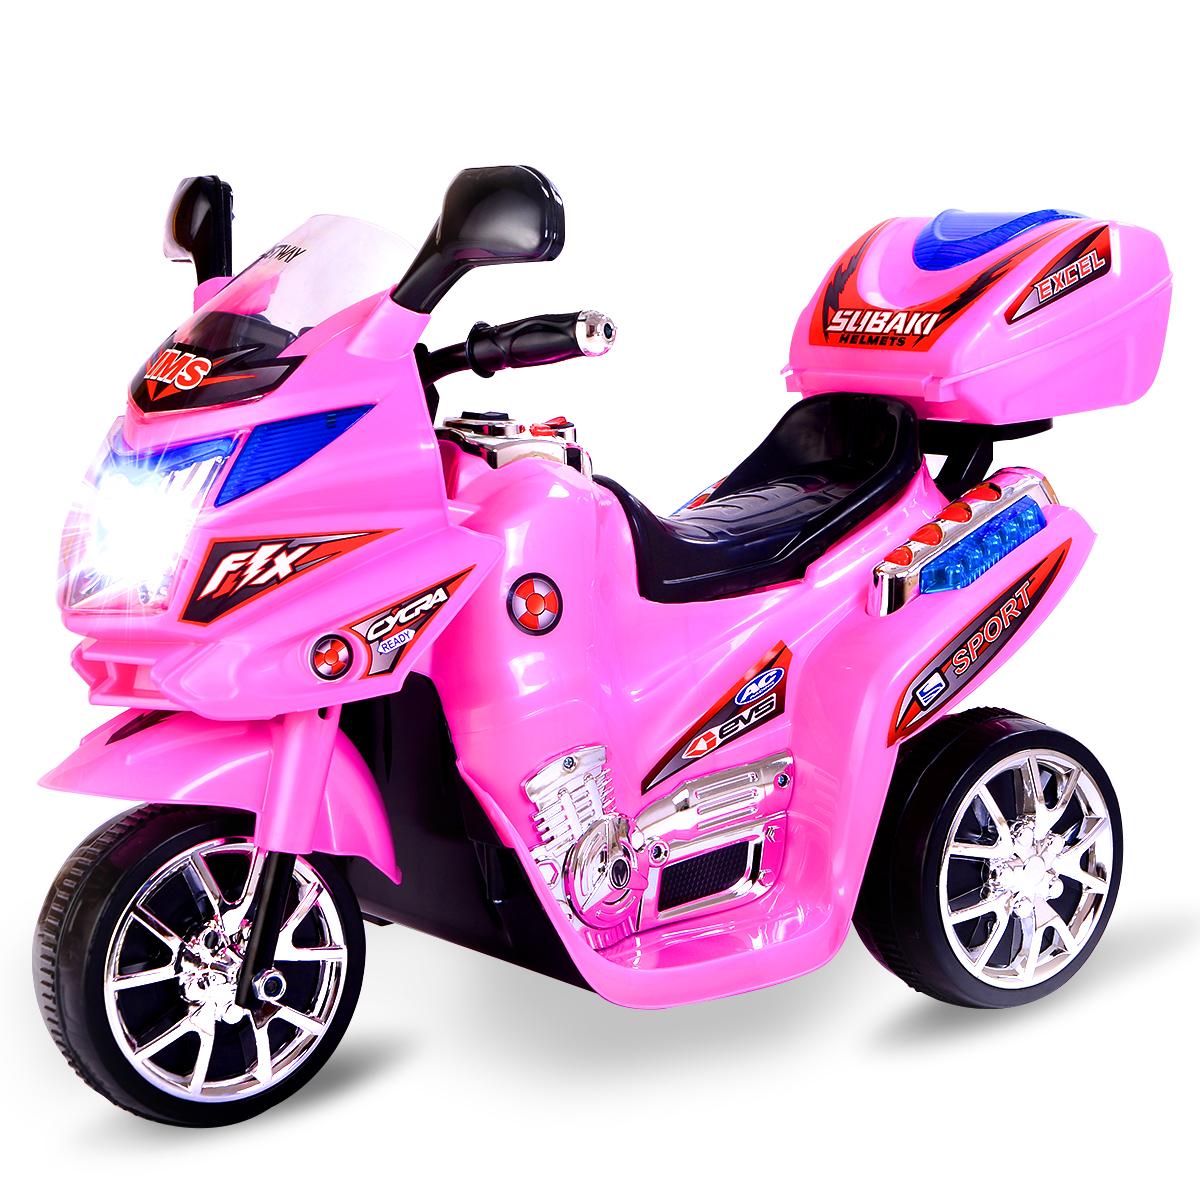 Costway 3 Wheel Kids Ride On Motorcycle 6V Battery Powered Electric Toy Power bicycle by Costway